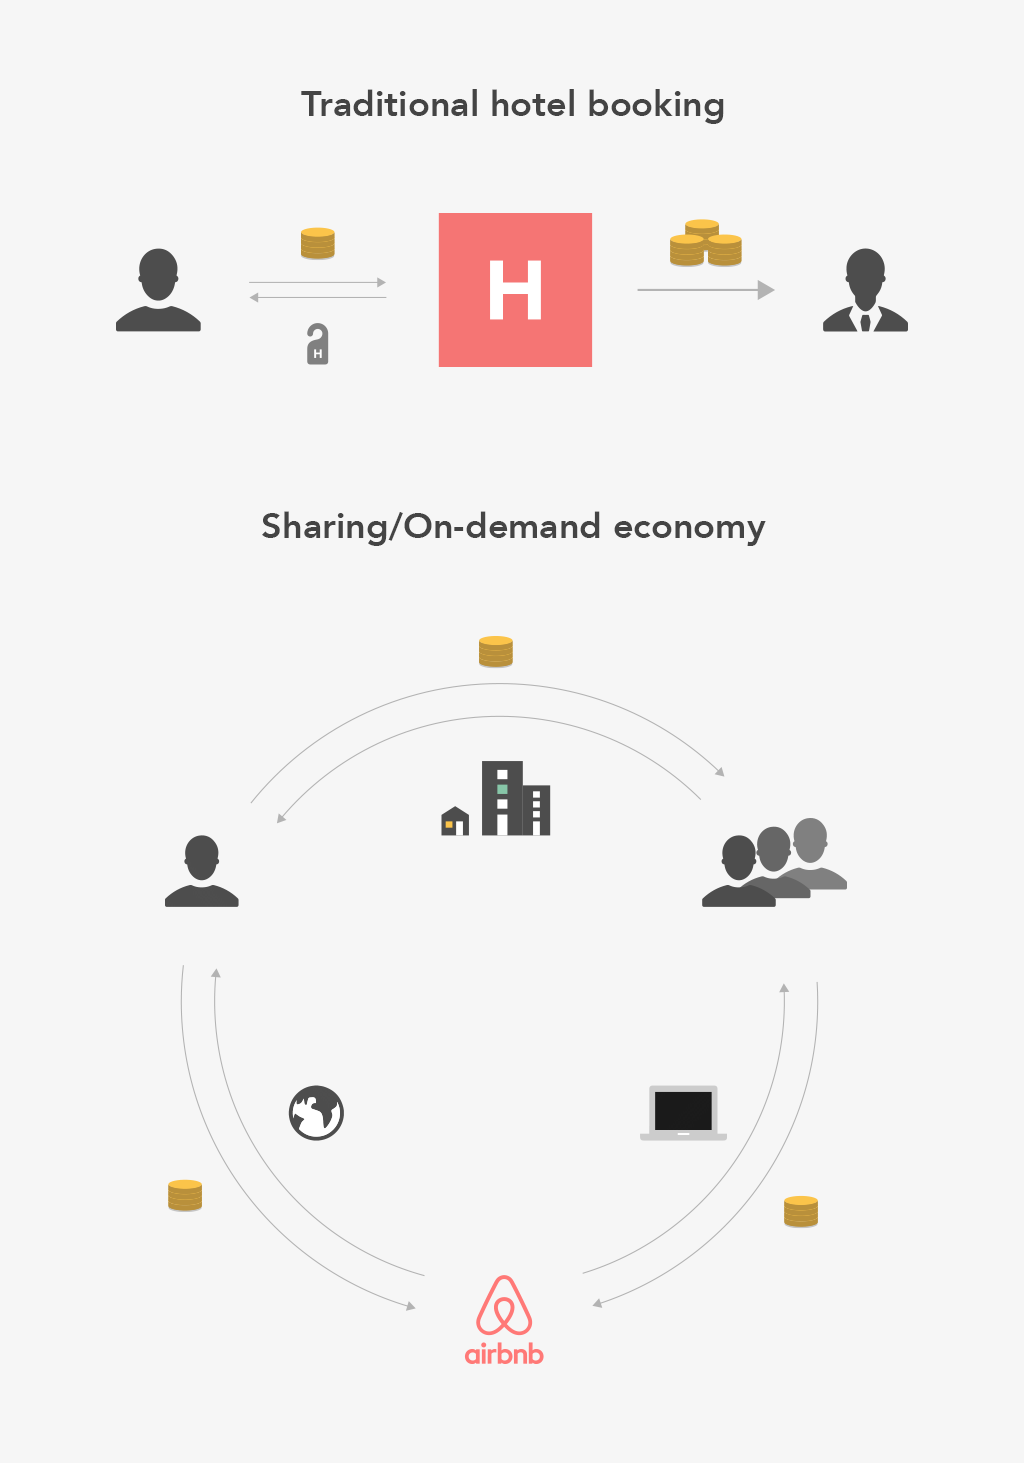 Traditional hotel booking vs. Sharing/On demand economy